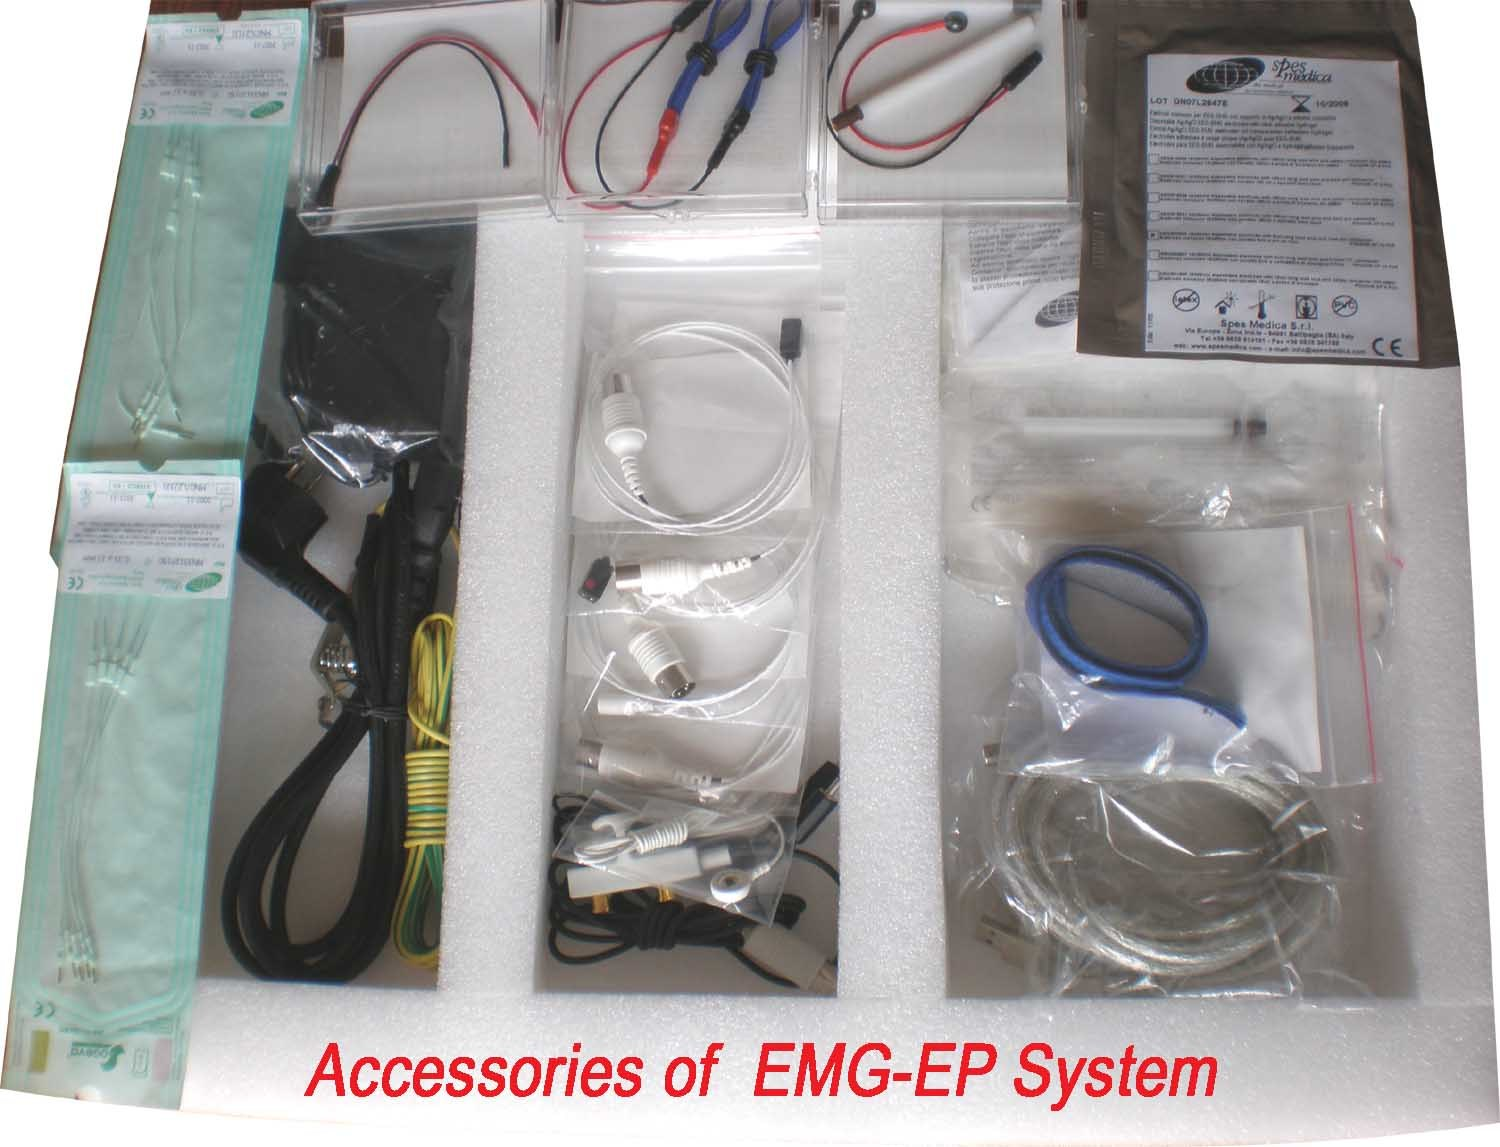 Ce Approved 4-Channel Emg/Ep Systems (NeuroScape) -Fanny